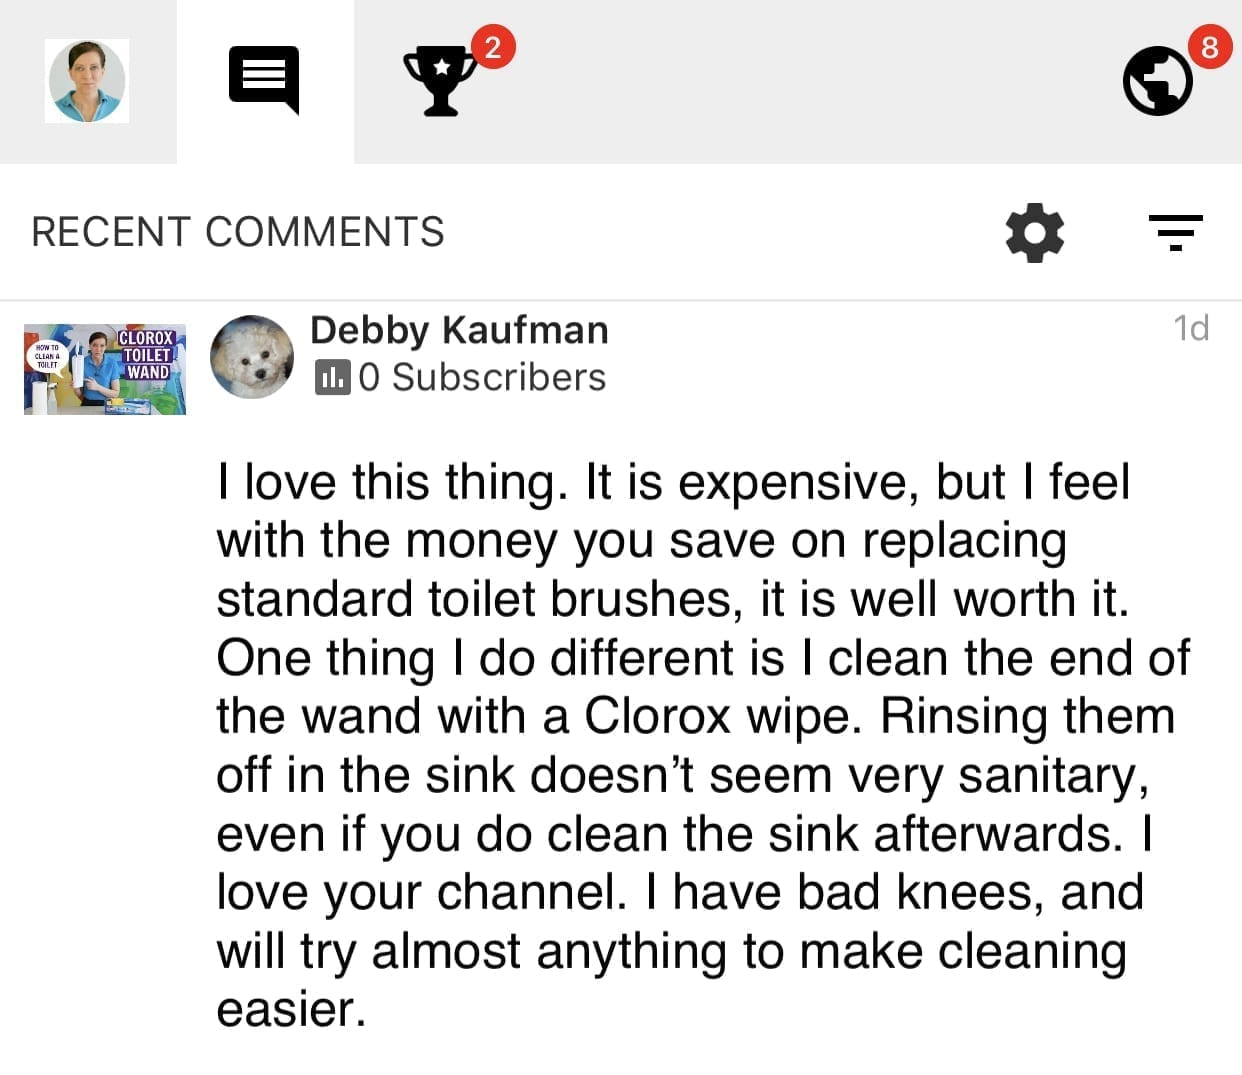 Clorox ToiletWand, I Love it, Savvy Cleaner Product Review Testimonial